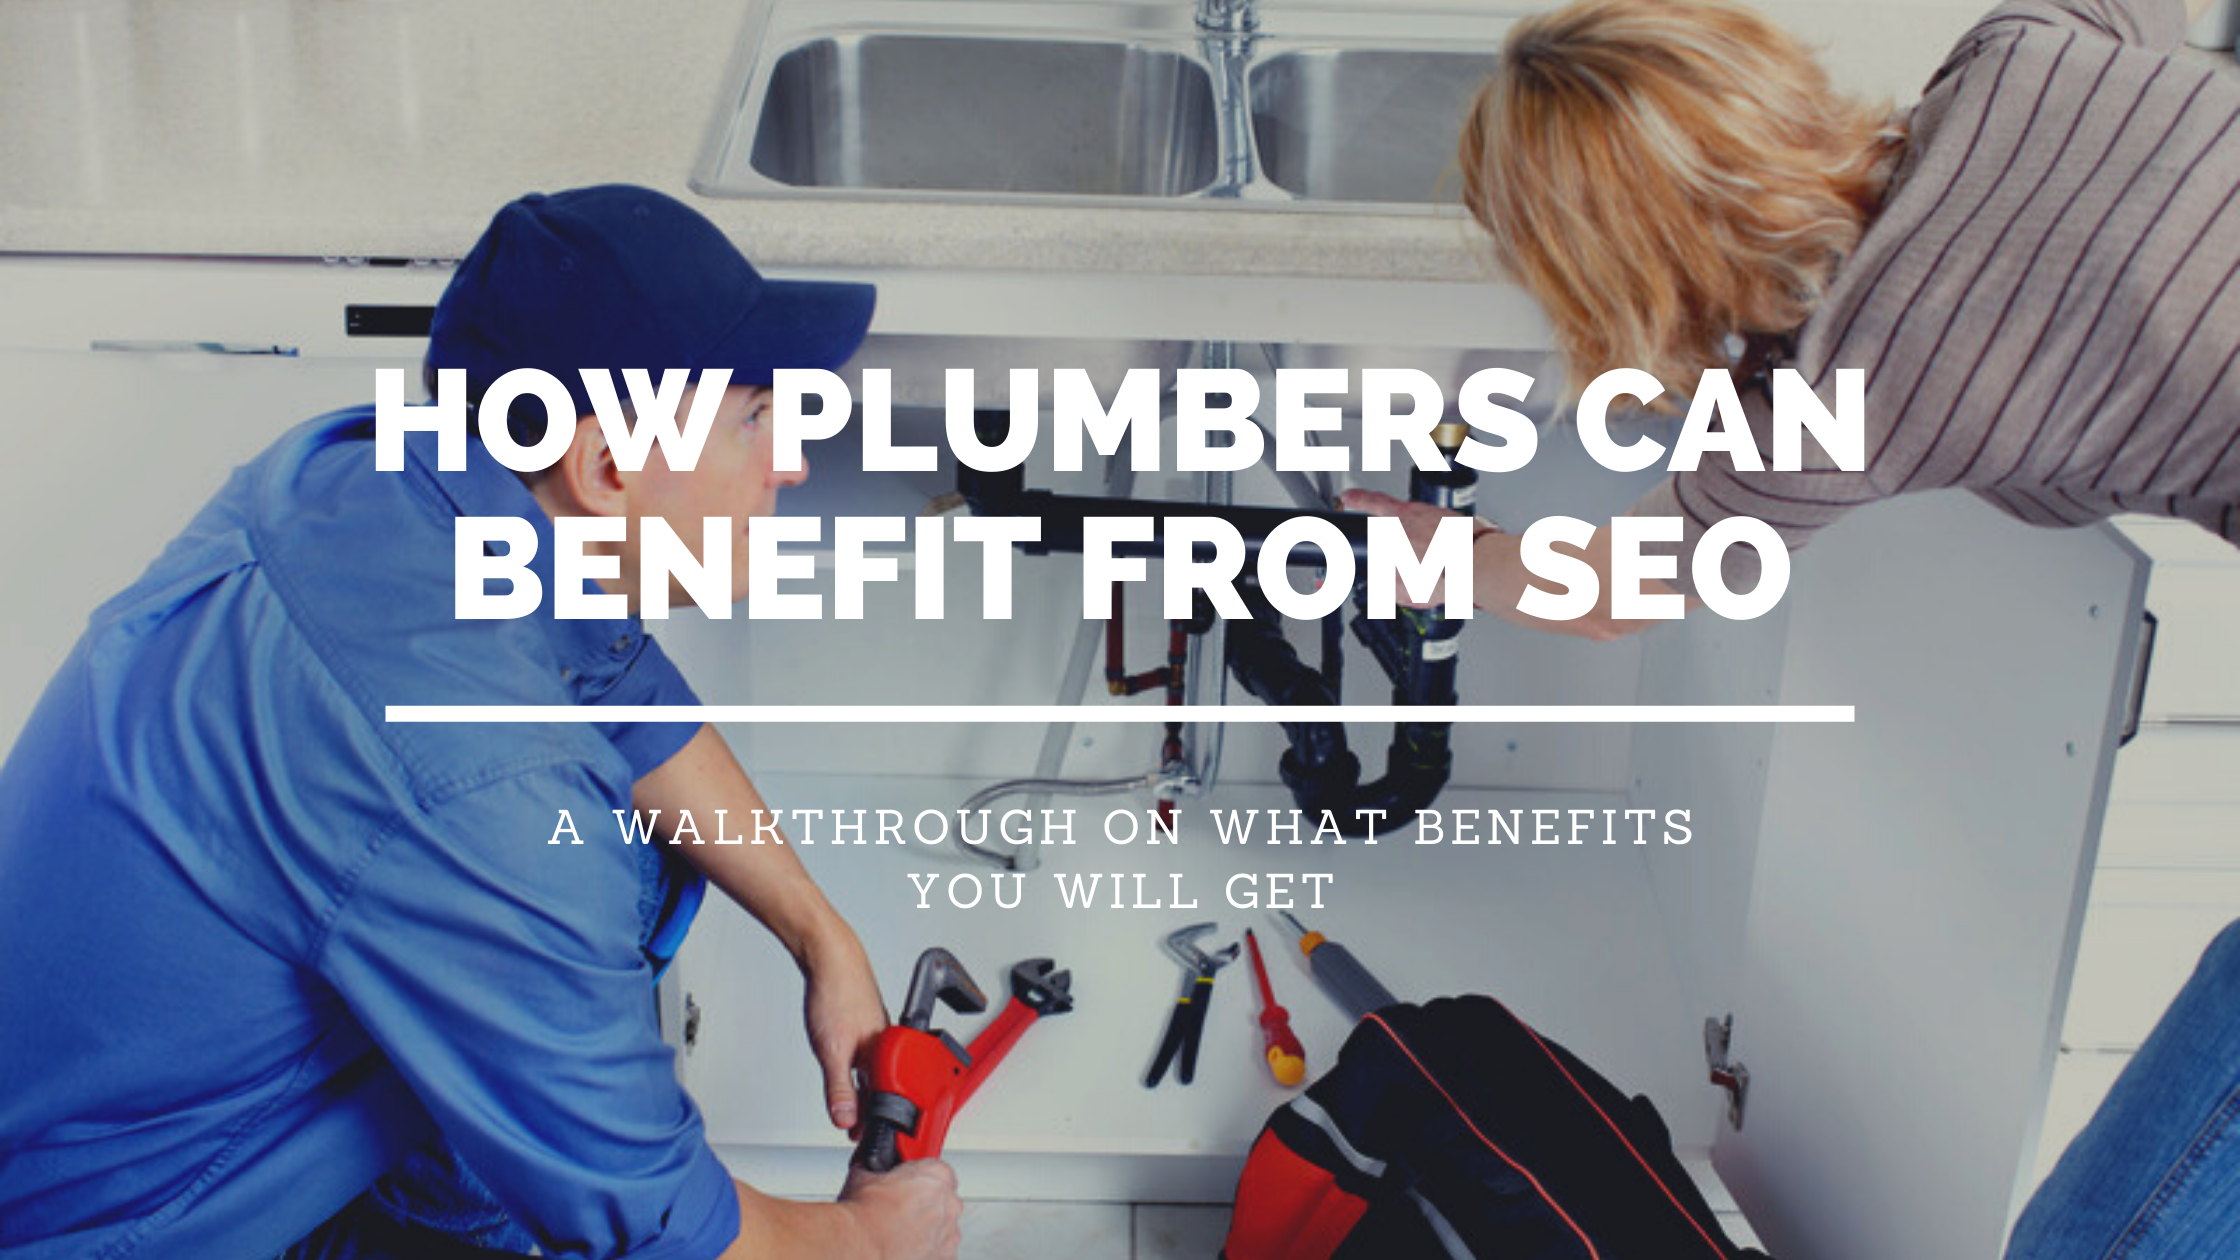 How Plumbers can benefit from SEO